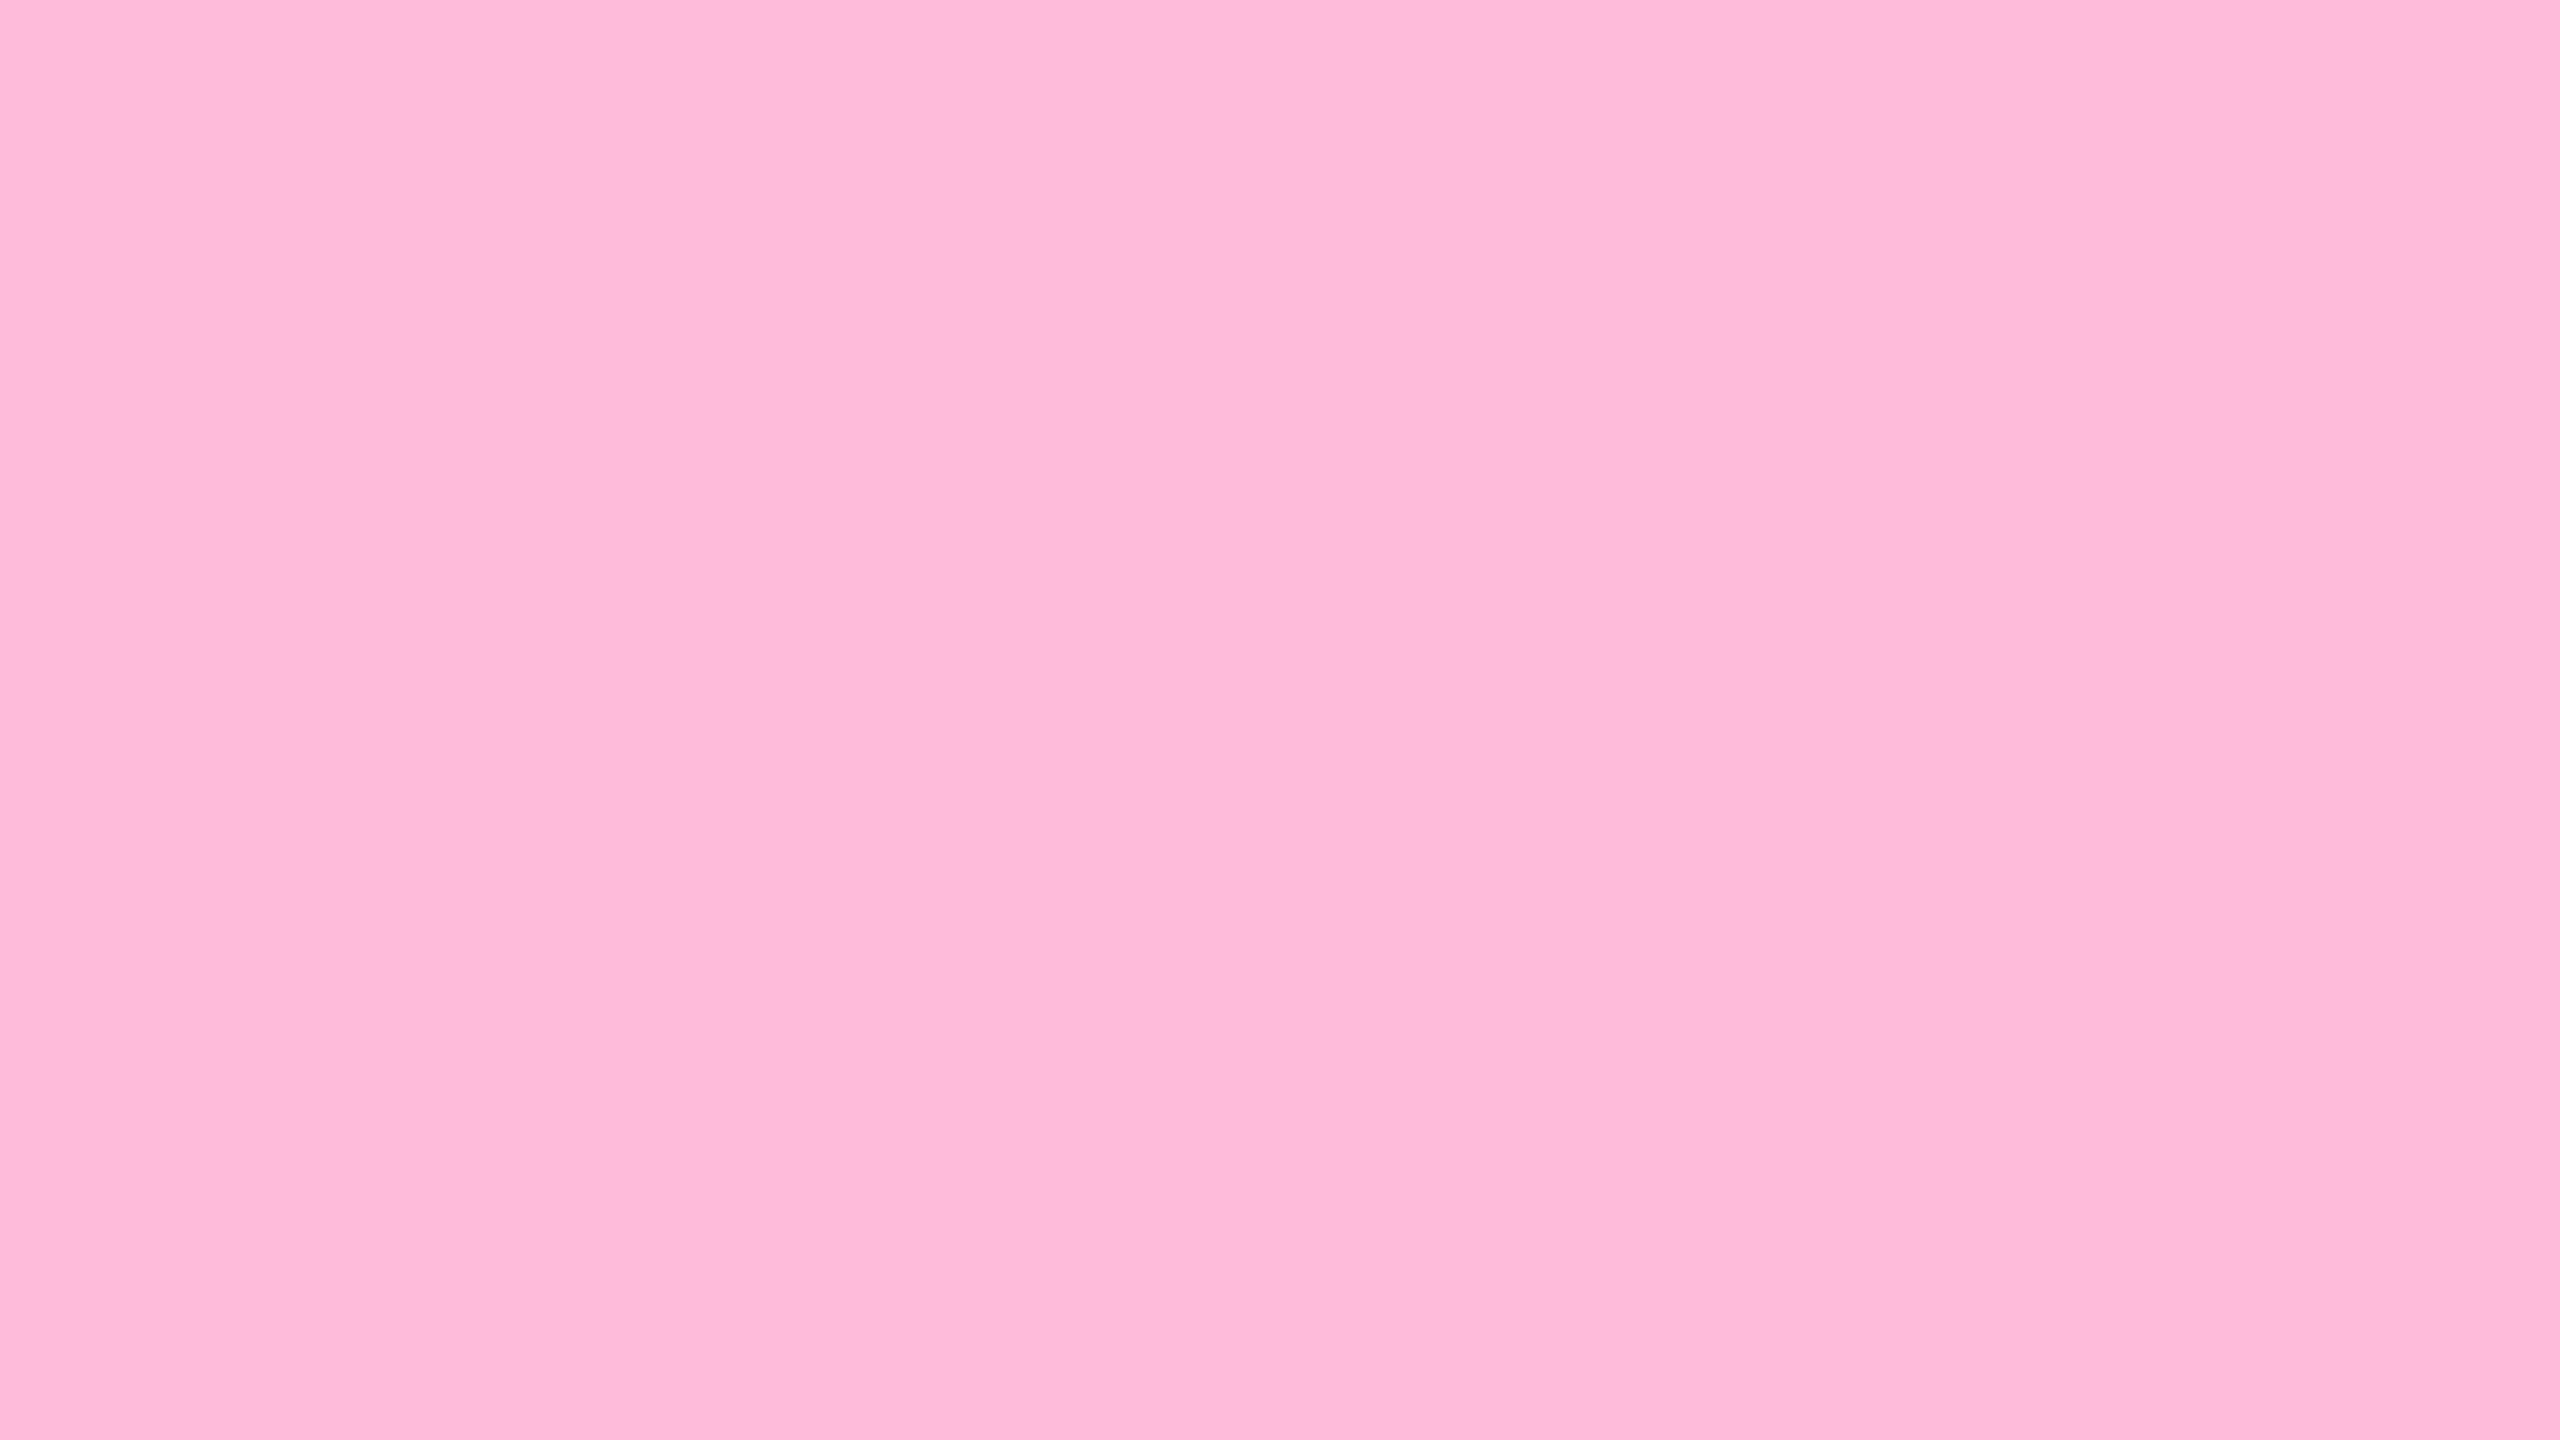 2560x1440 Cotton Candy Solid Color Background